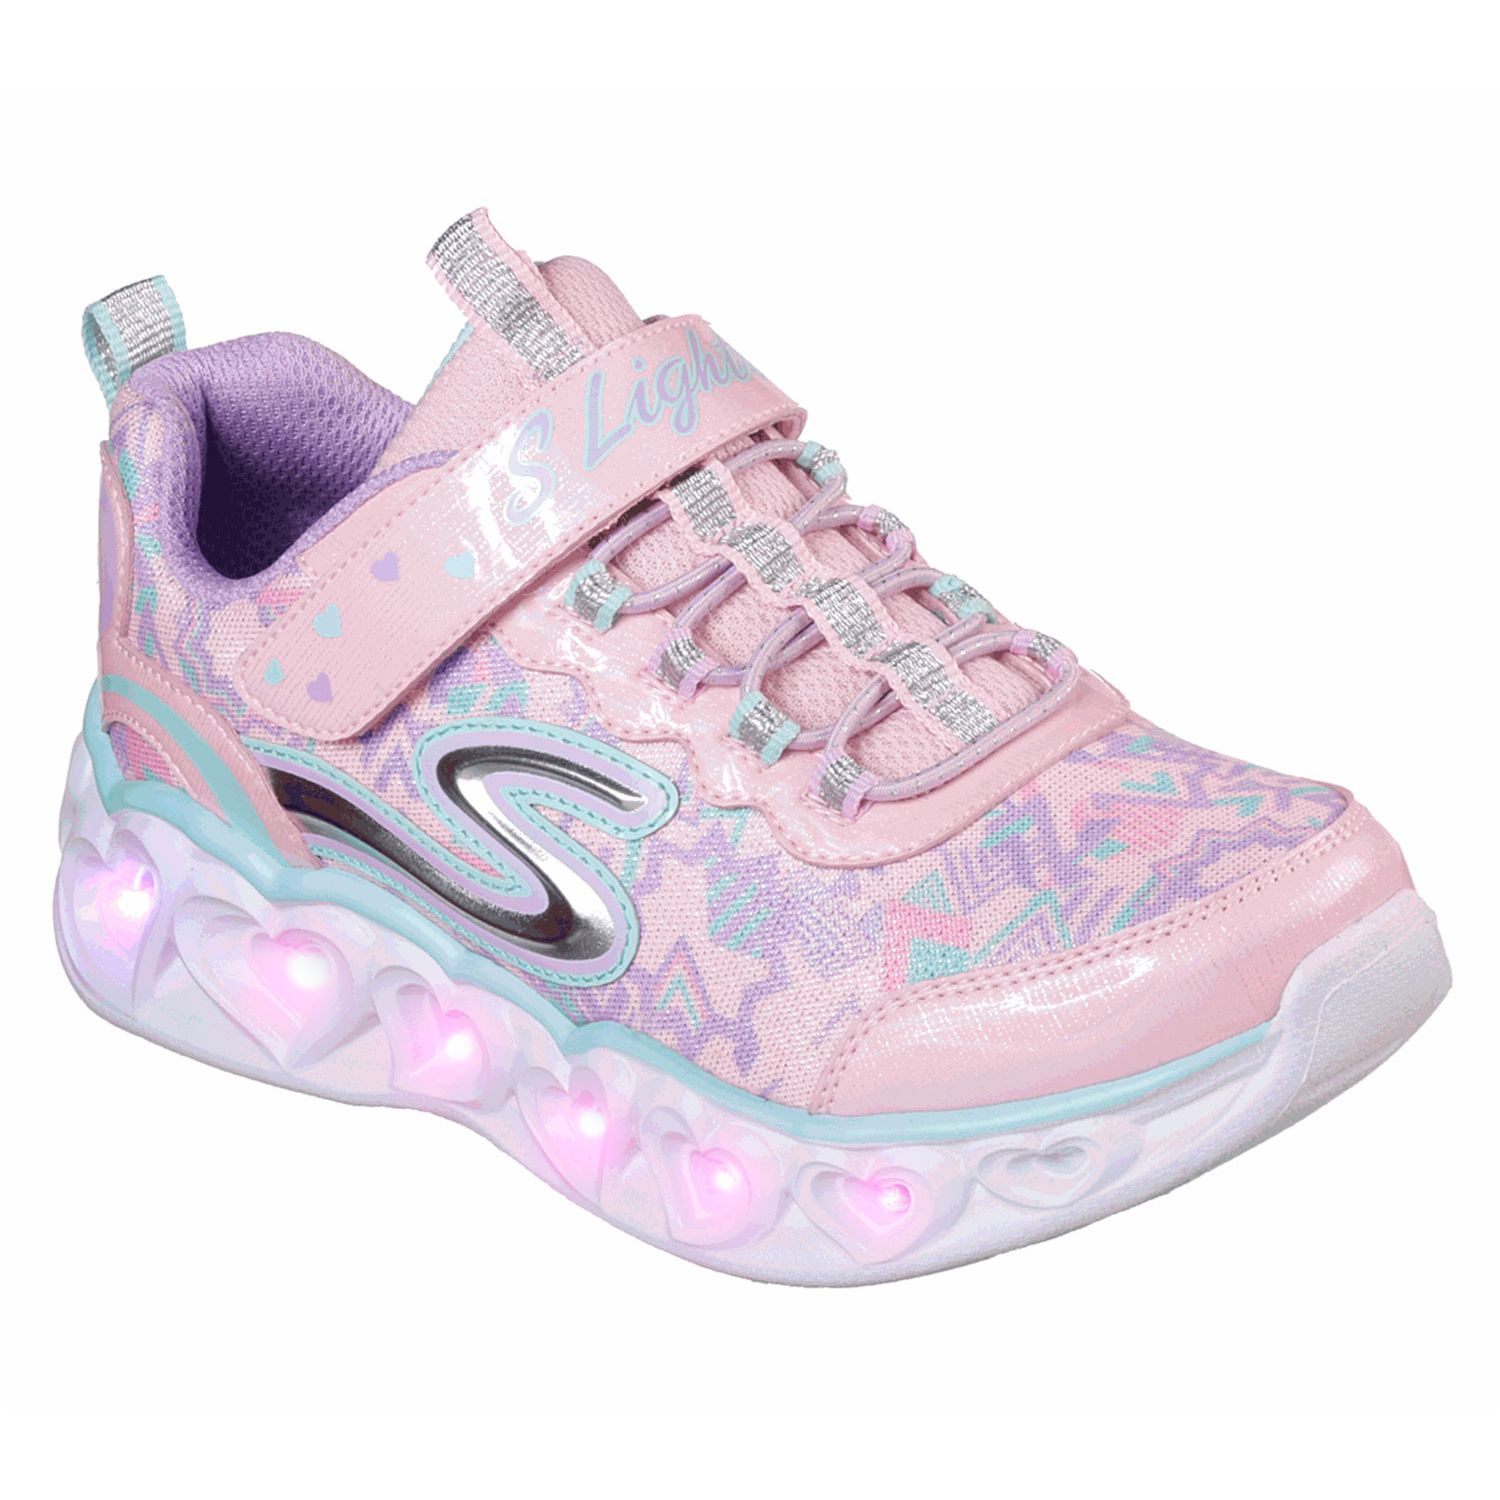 venta oficial brillante en brillo colores delicados Casual de Niña Skechers Rosado s lights: heart lights ...